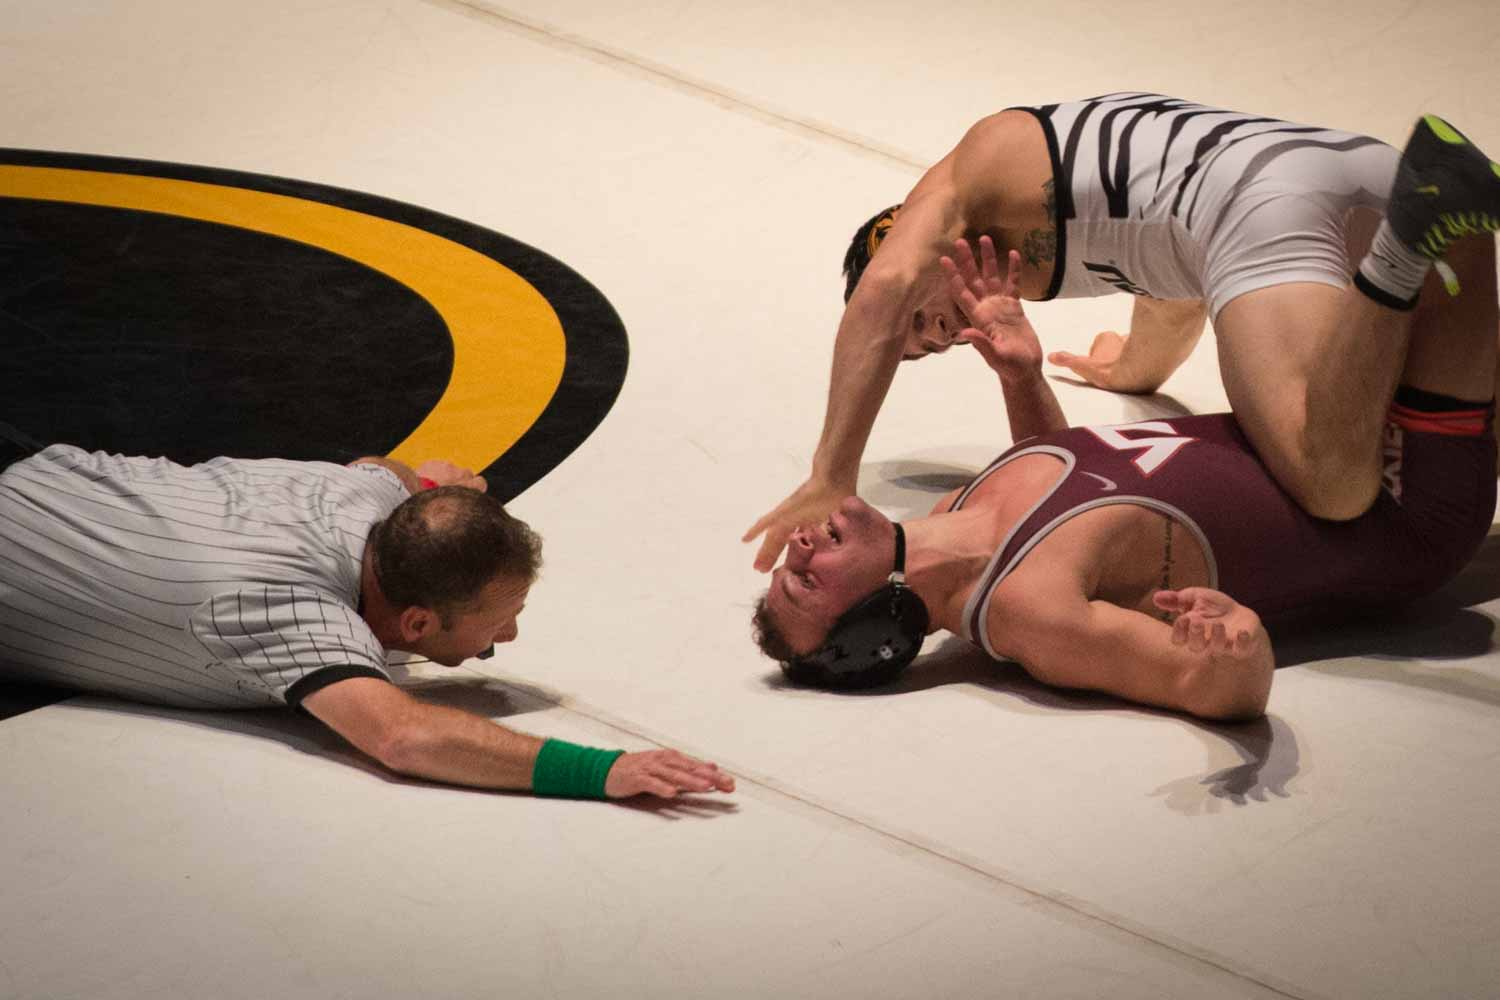 Redshirt junior 157-pounder Joey Lavallee jumped out to a 10-2 lead after the first period, helping him earn his second straight major decision to open the year, 15-5, over No. 17 Sal Mastriani. The win gave Mizzou a 16-3 lead at intermission.